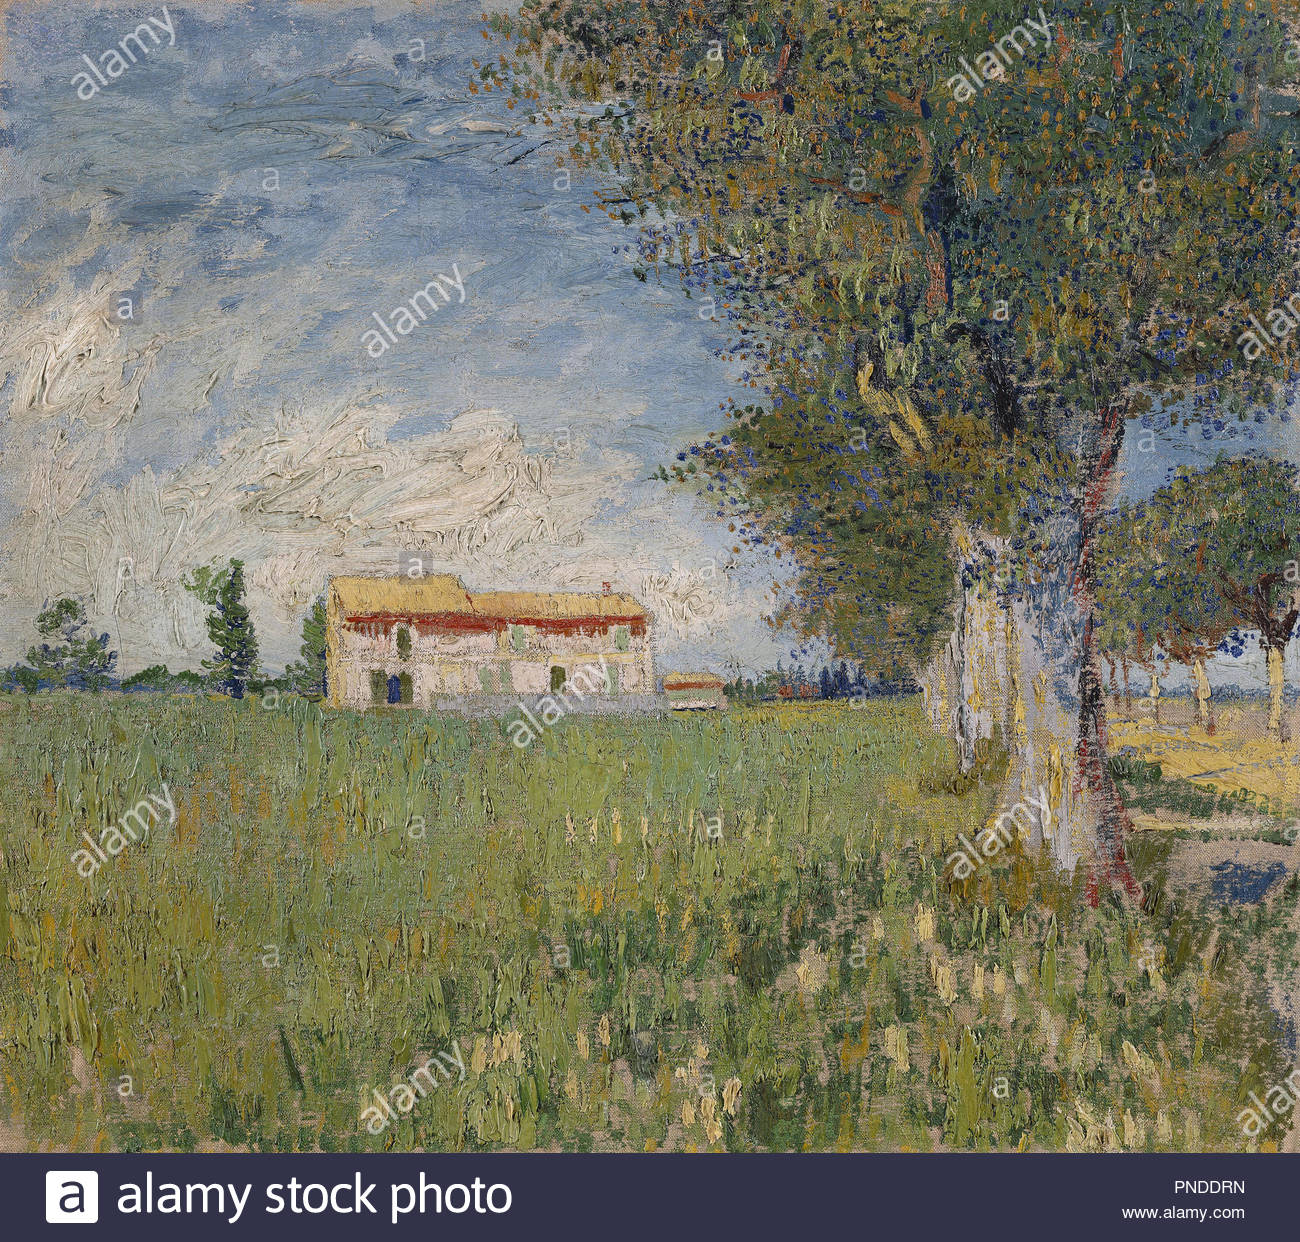 Boerderij in een korenveld / Farmhouse in a wheat field. Date/Period: 1888. Painting. Oil on canvas. Height: 45 cm (17.7 in); Width: 50 cm (19.6 in). Author: VINCENT VAN GOGH. VAN GOGH, VINCENT. - Stock Image